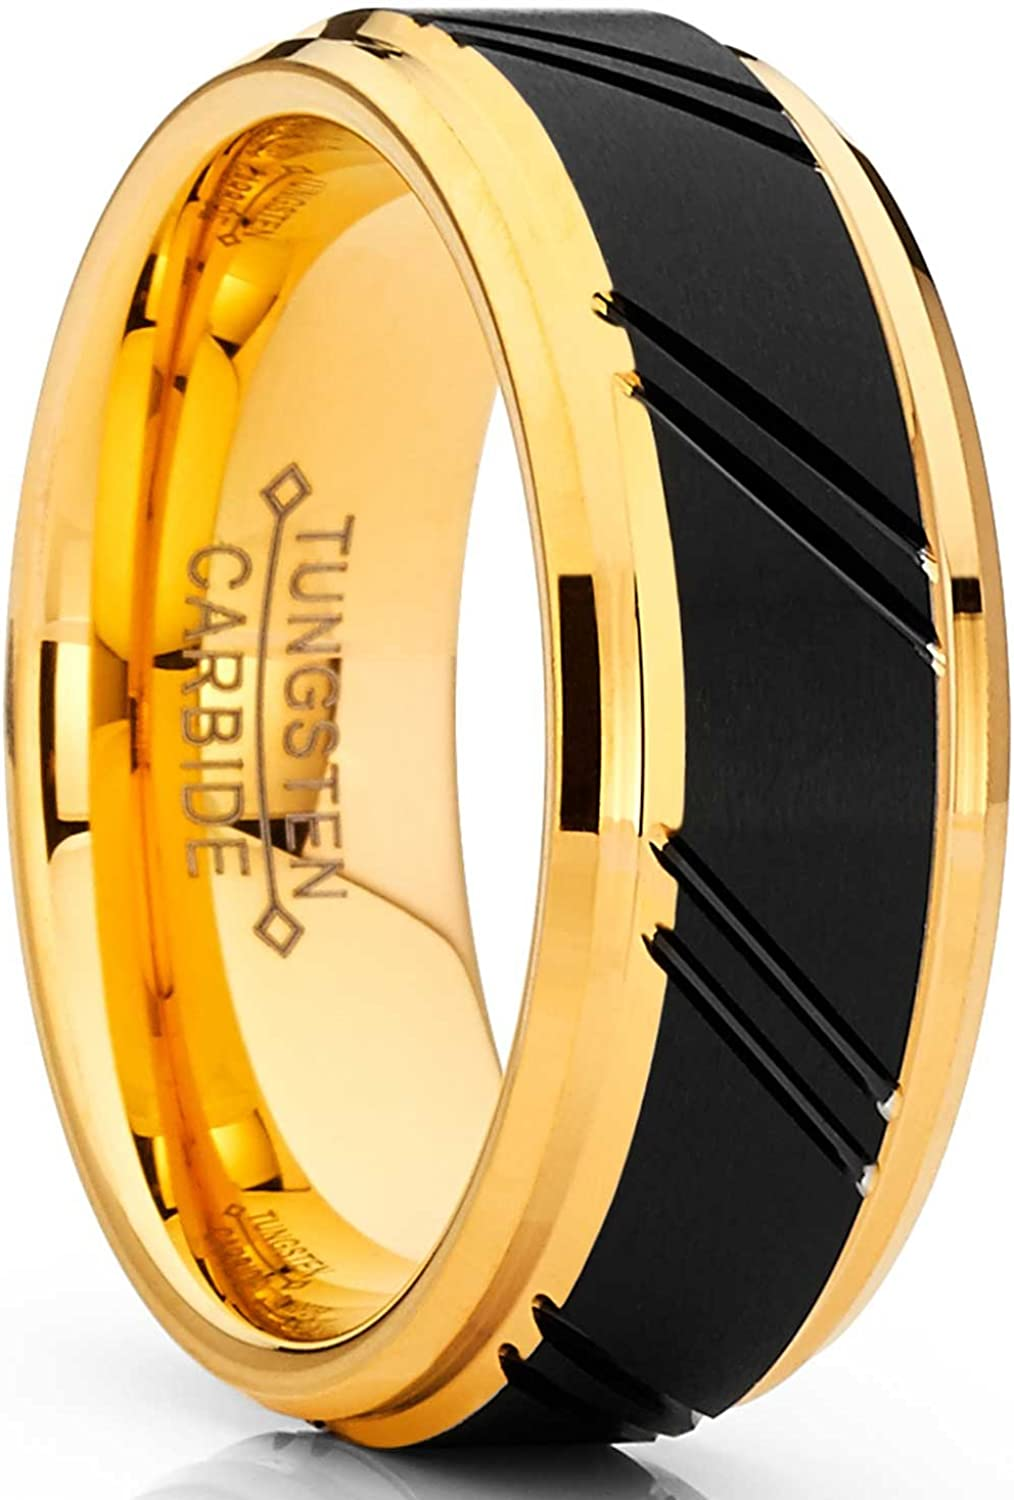 Metal Masters Co. Men's Duo Tungsten Carbide Wedding Band Black and Gold Tone Ring Comfort Fit 8mm